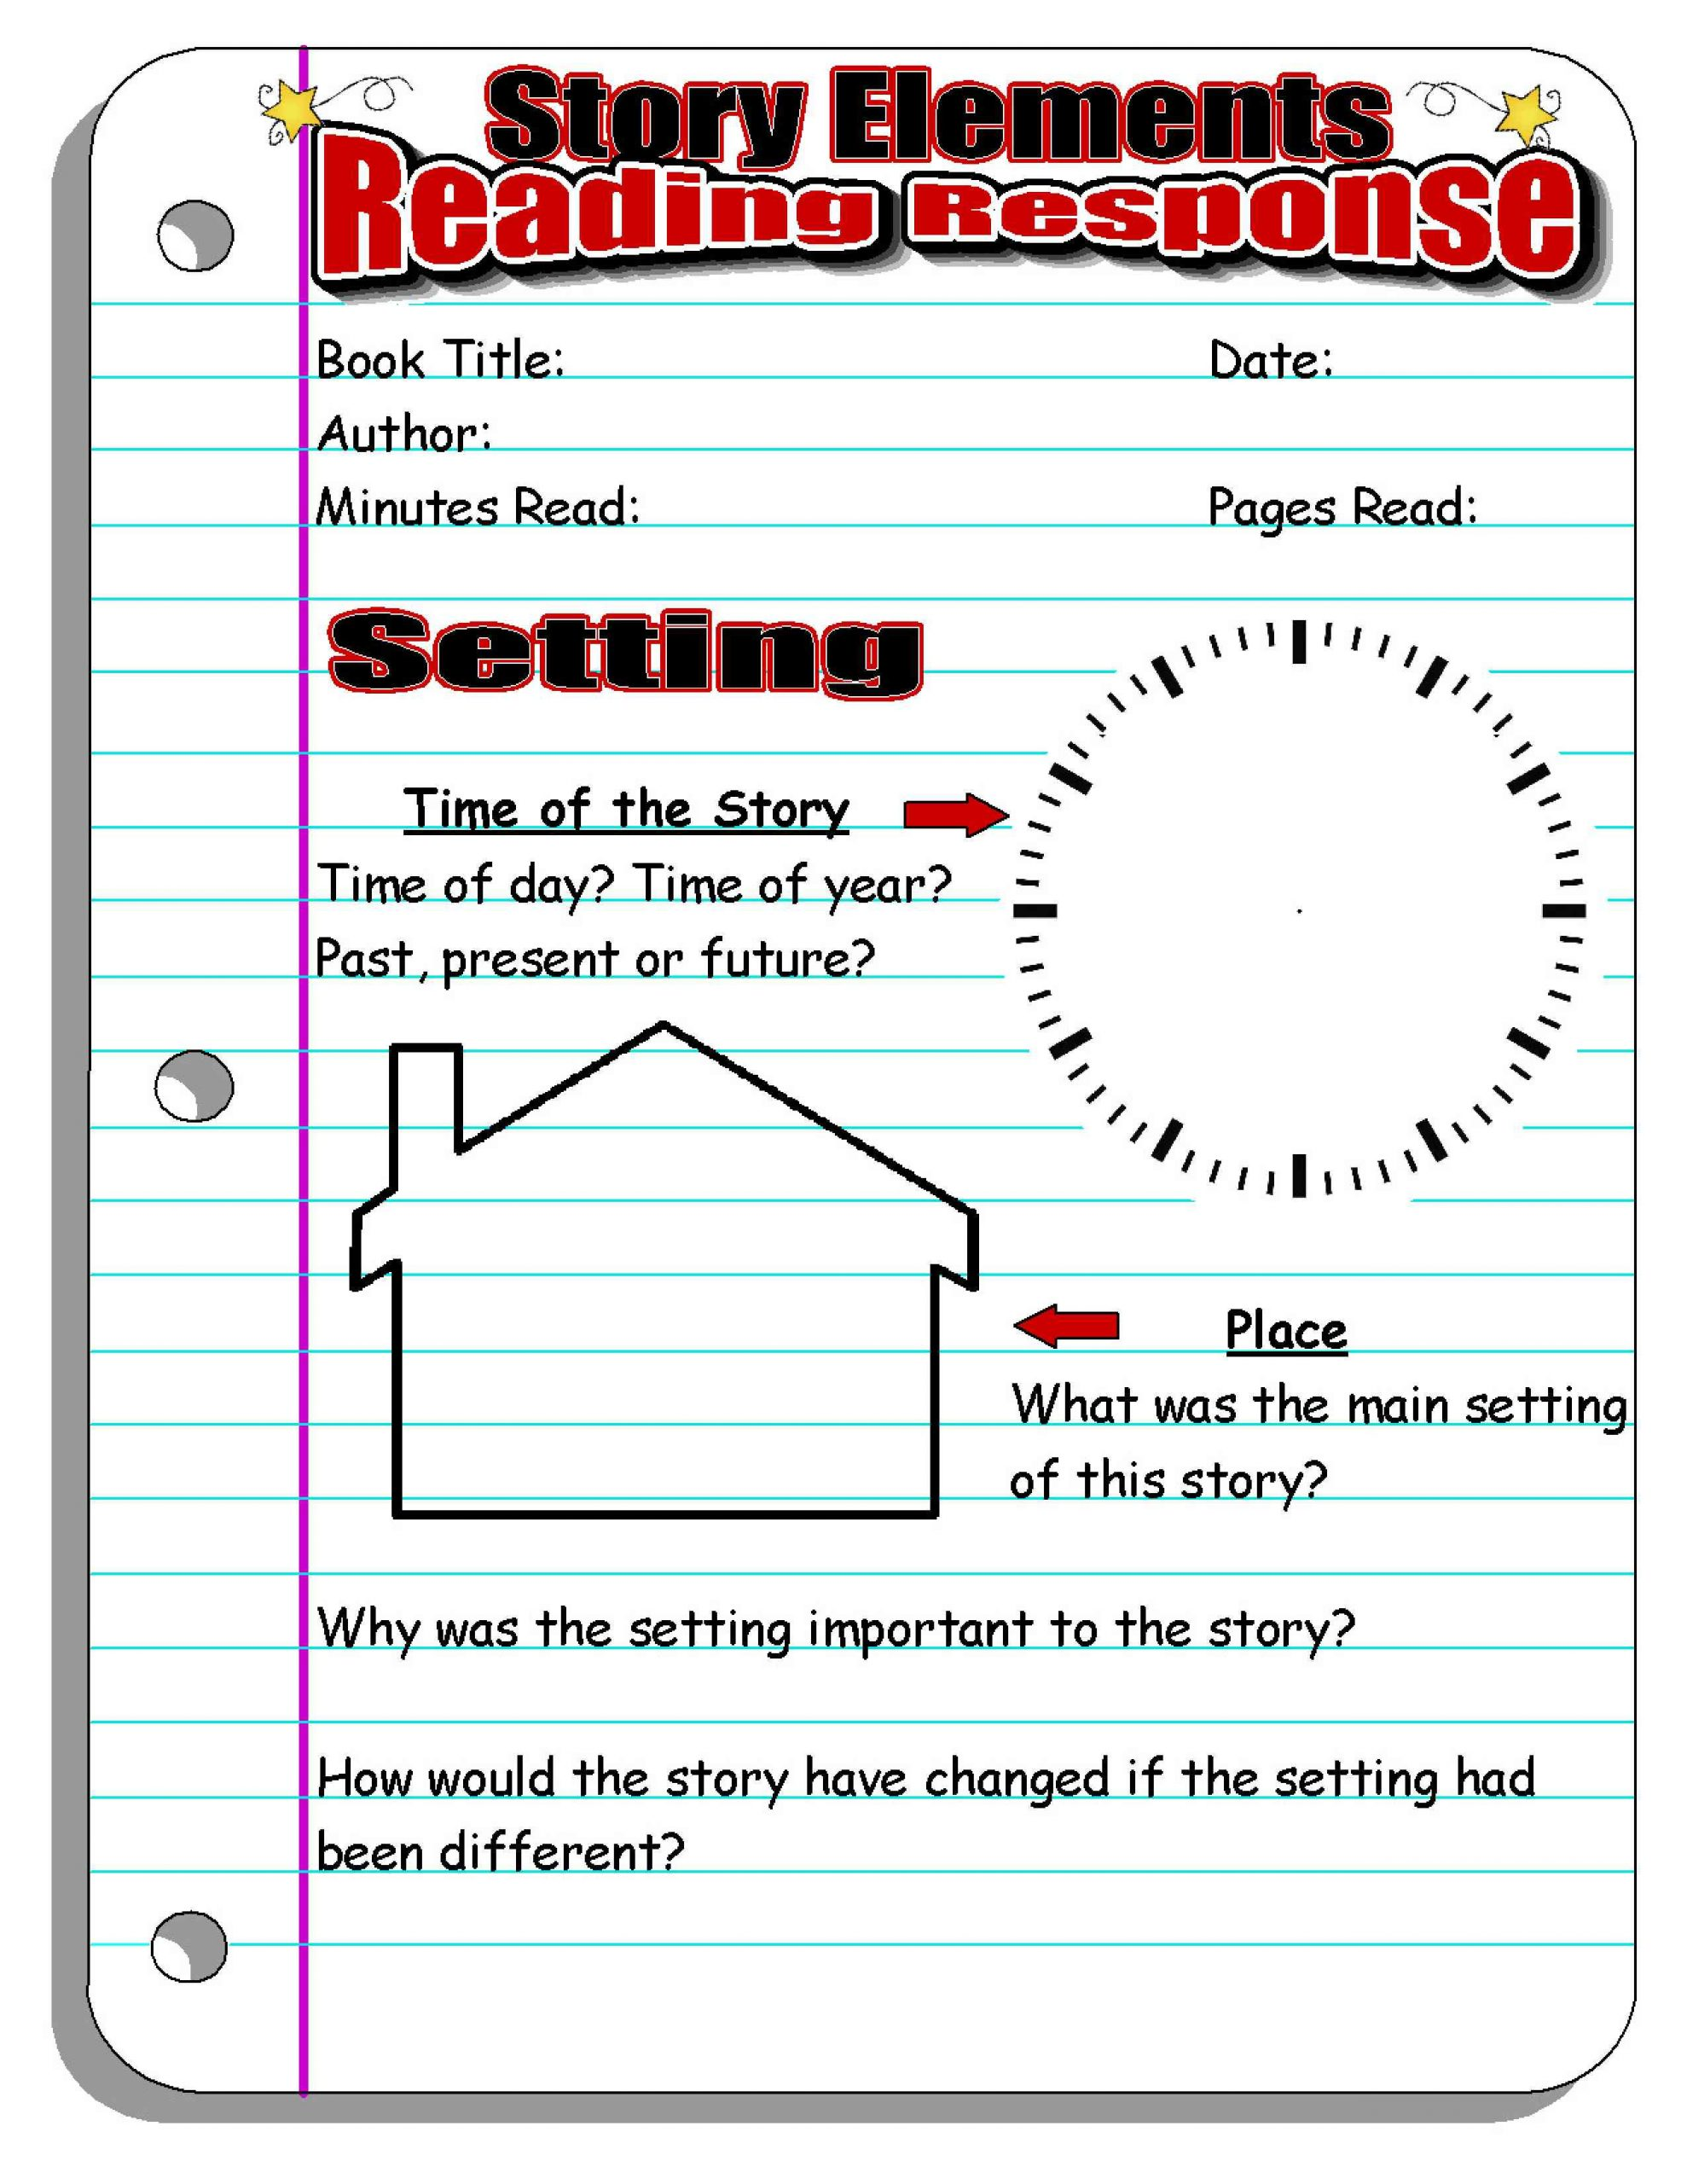 Read and Respond Worksheet Reading Response forms and Graphic organizers